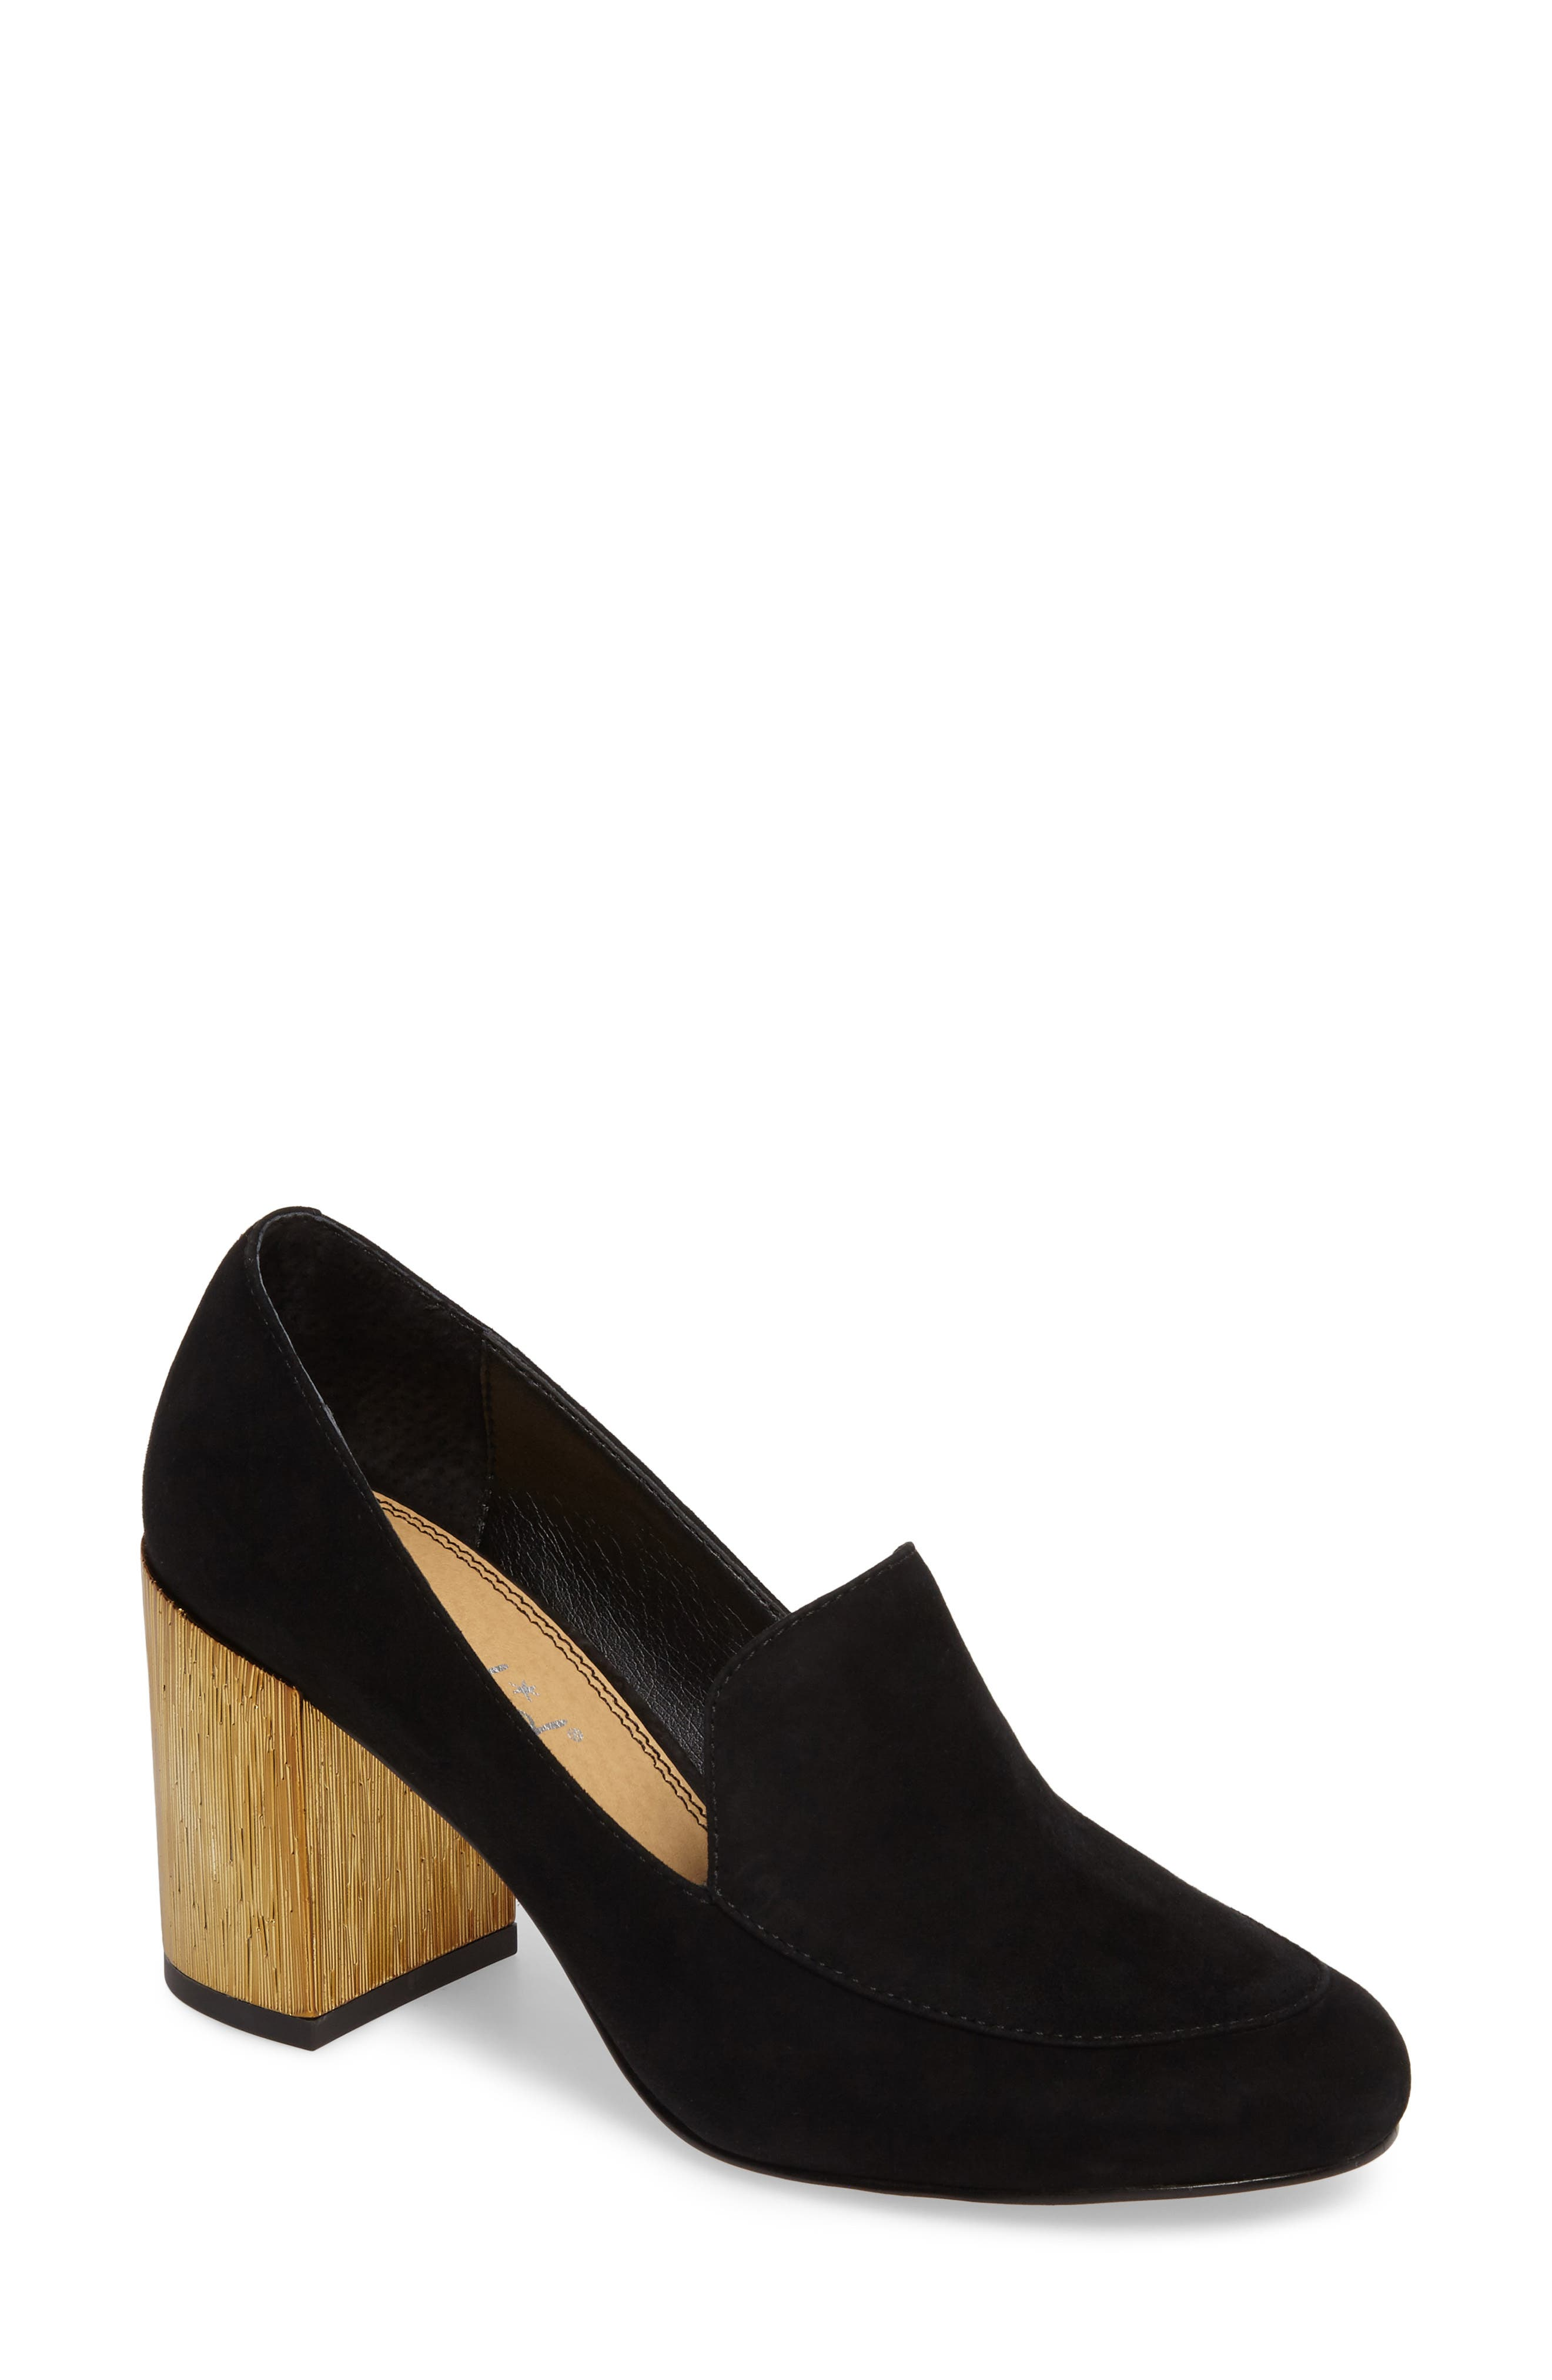 Alternate Image 1 Selected - Splendid Rosita Loafer Pump (Women)